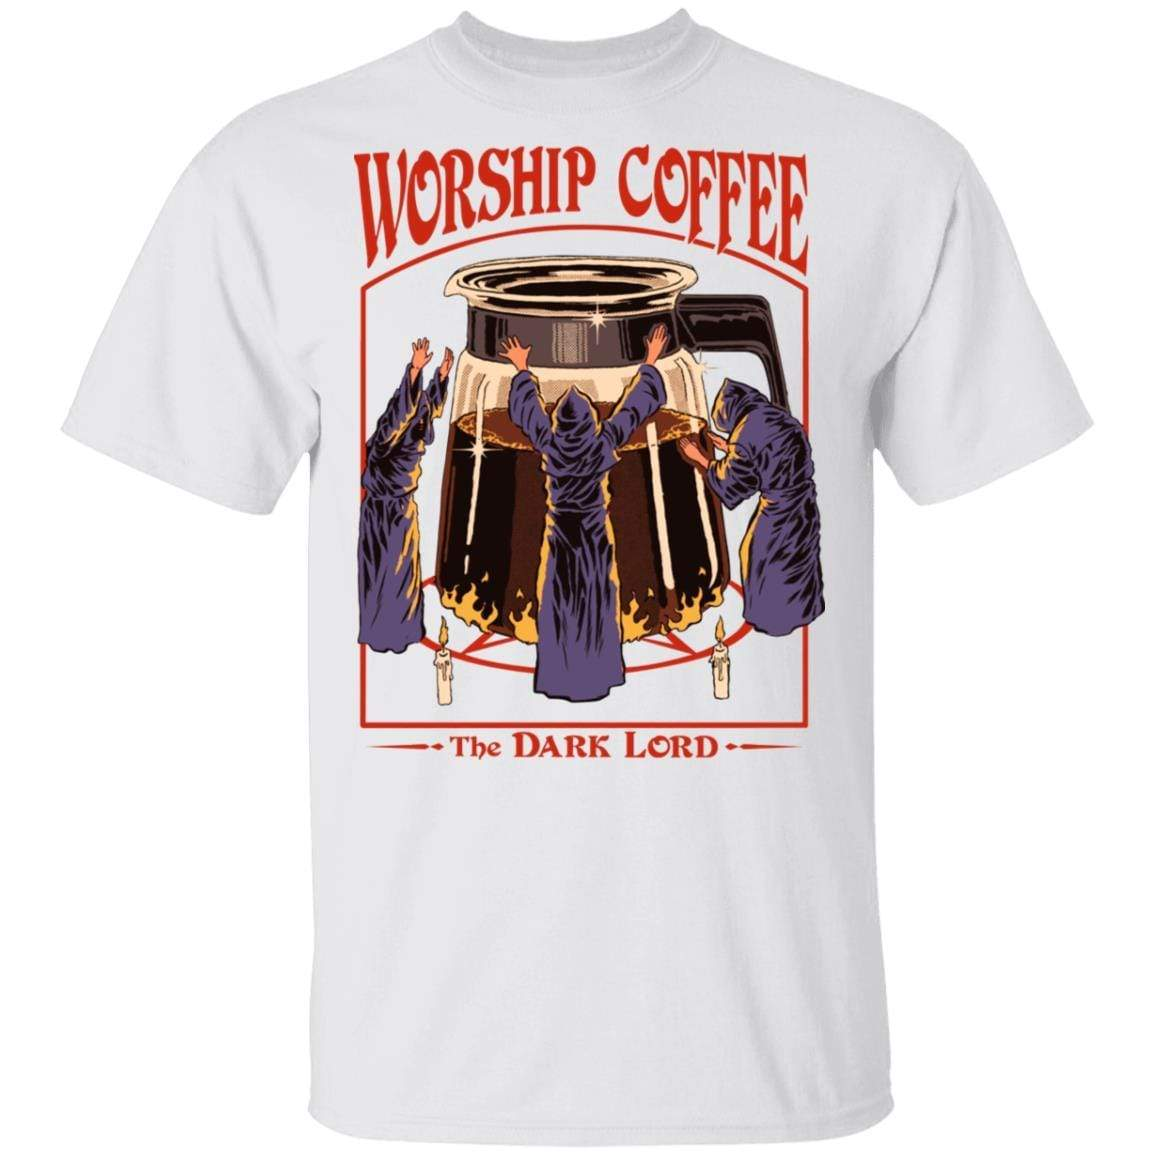 Worship Coffee The Dark Lord T-Shirts, Hoodies 1049-9974-89706084-48300 - Tee Ript